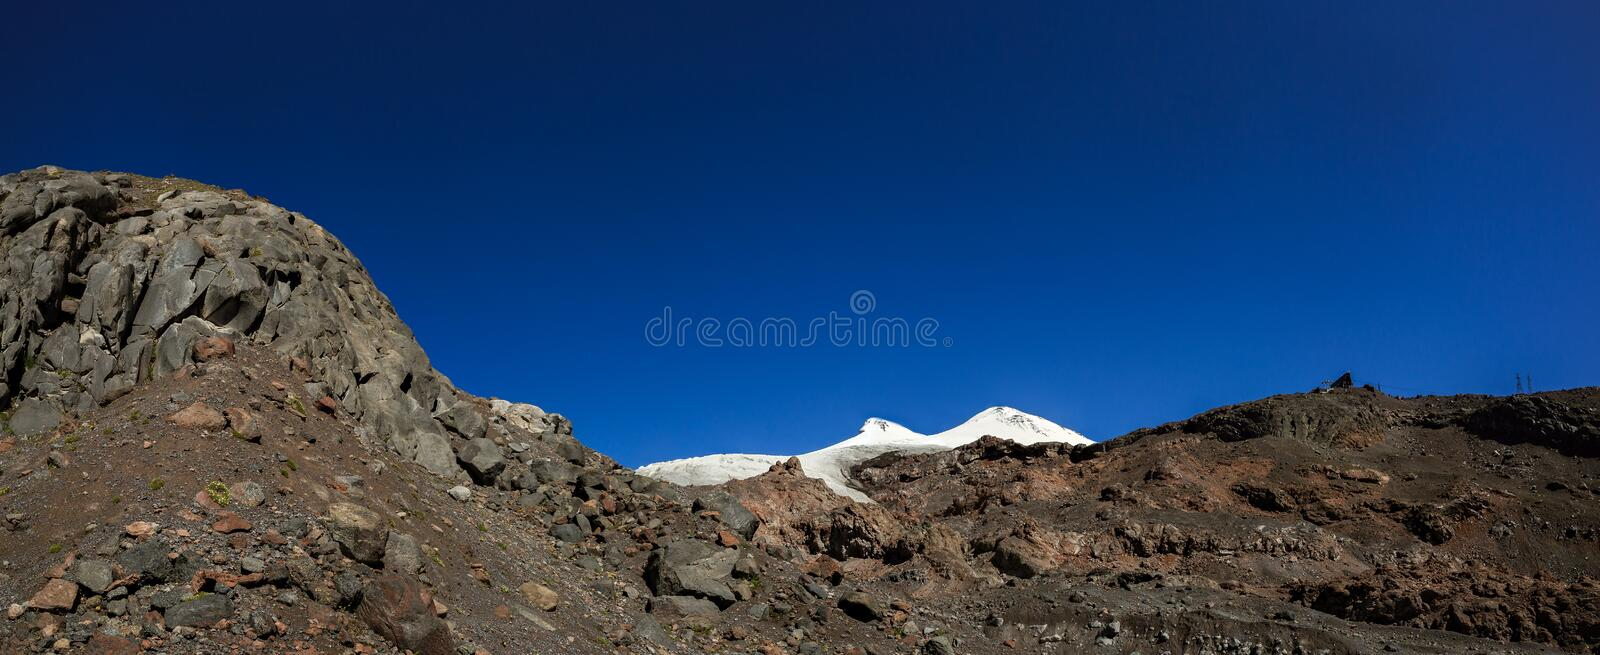 Panoramic view of the southern slope of Mount Elbrus. Of the Caucasus Mountains in Russia. Snow-covered mountain peaks with two peaks royalty free stock images